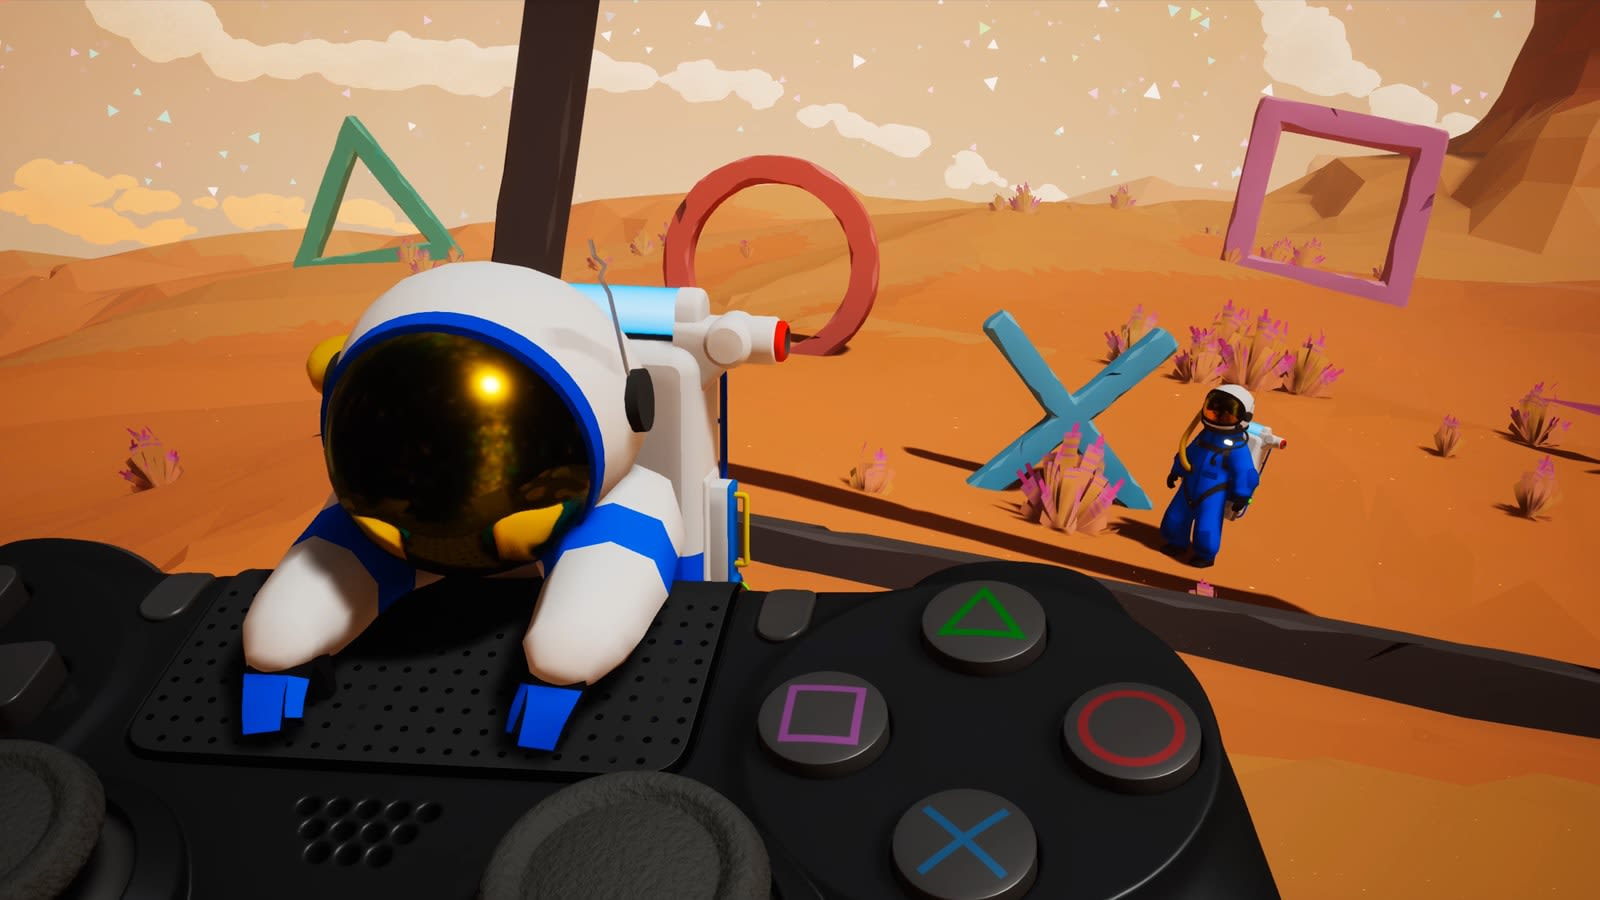 Astroneer' brings planetary exploration to PS4 on November 15th